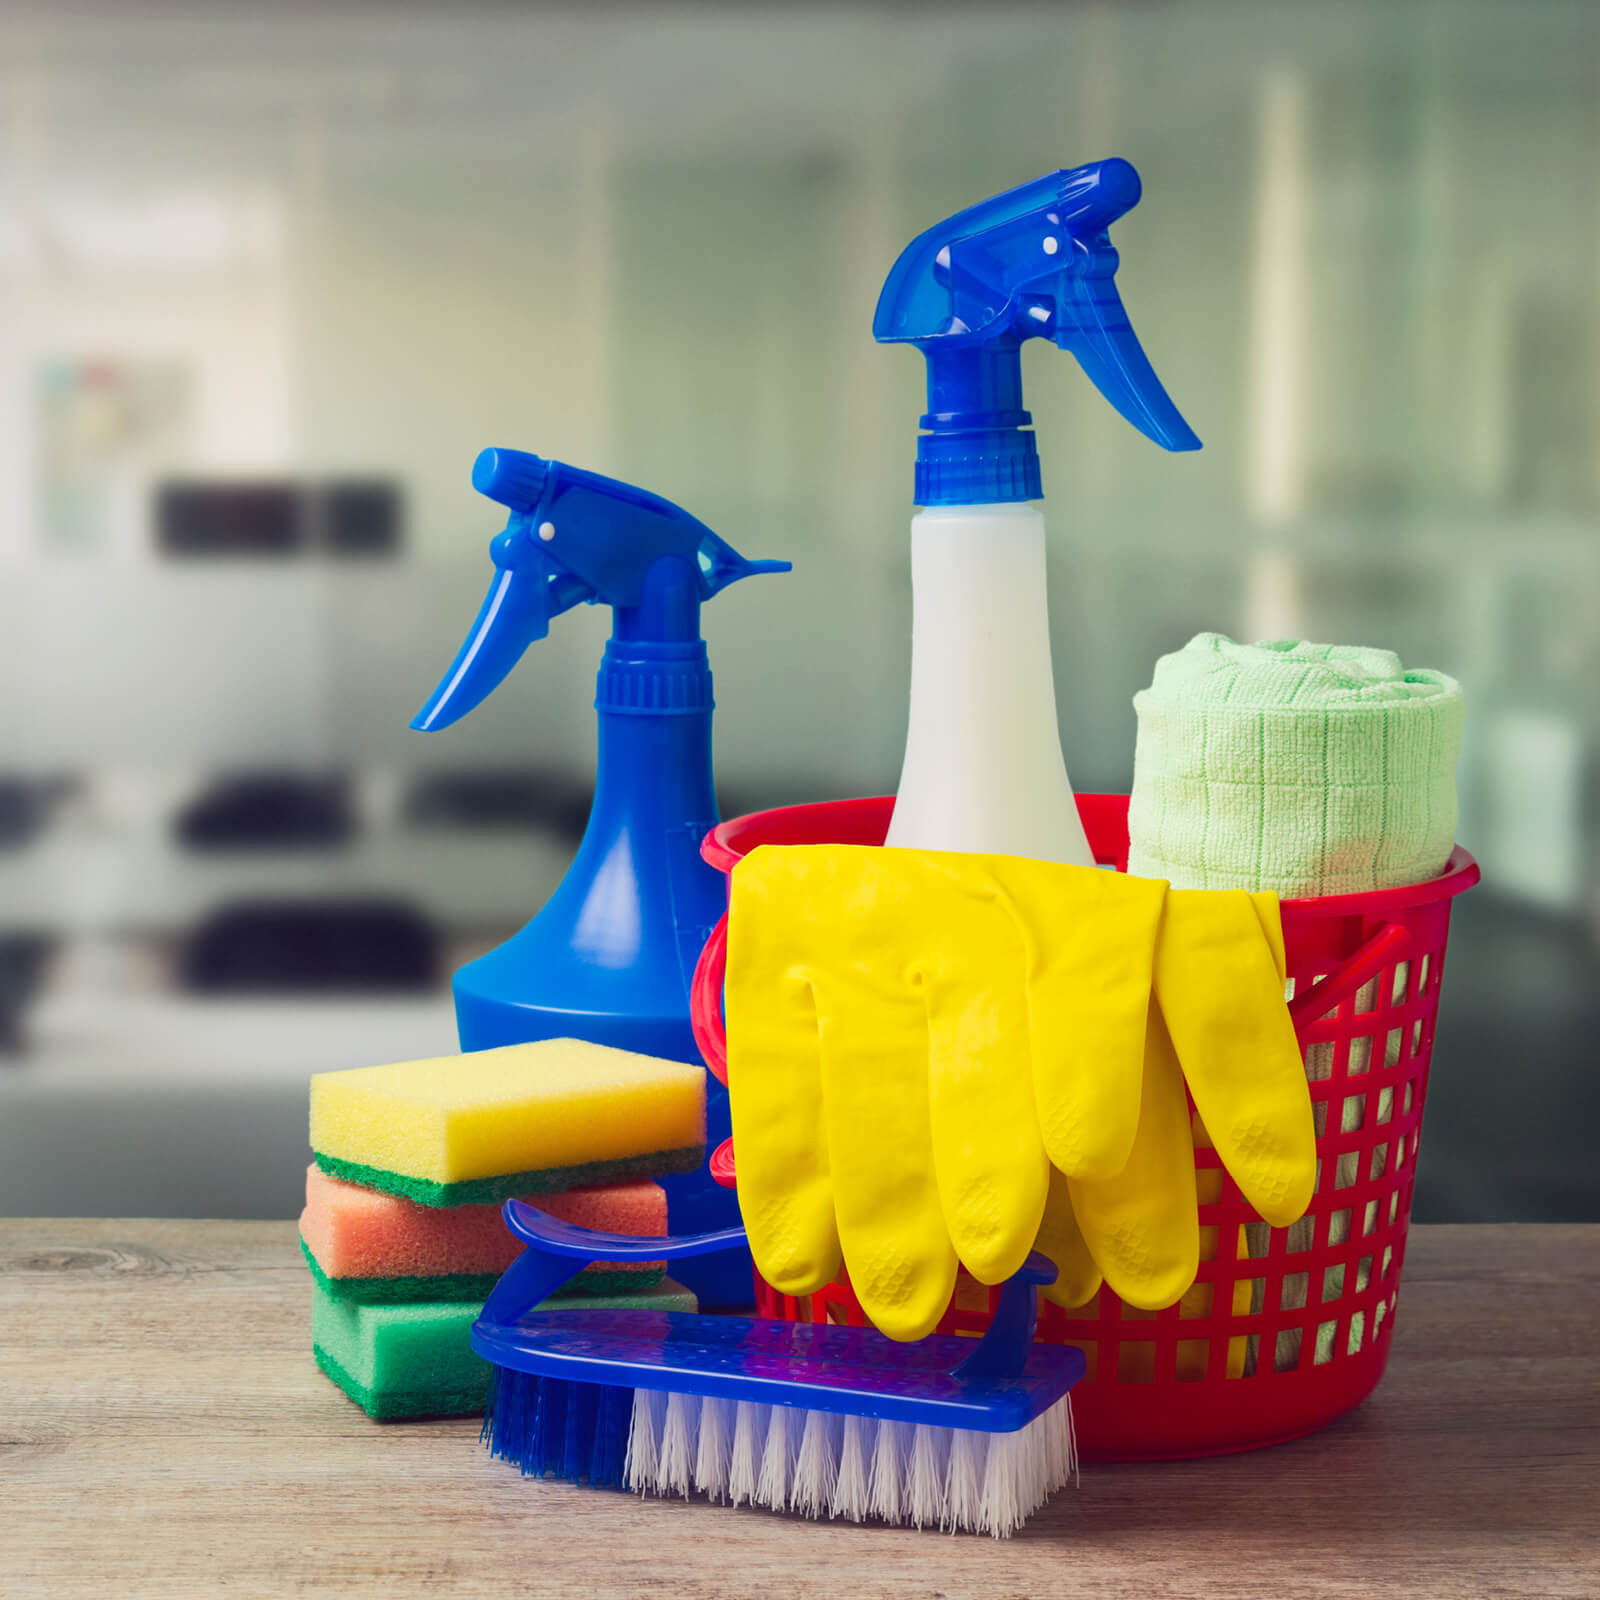 Cleaning supplies   Chesapeake Family Floors